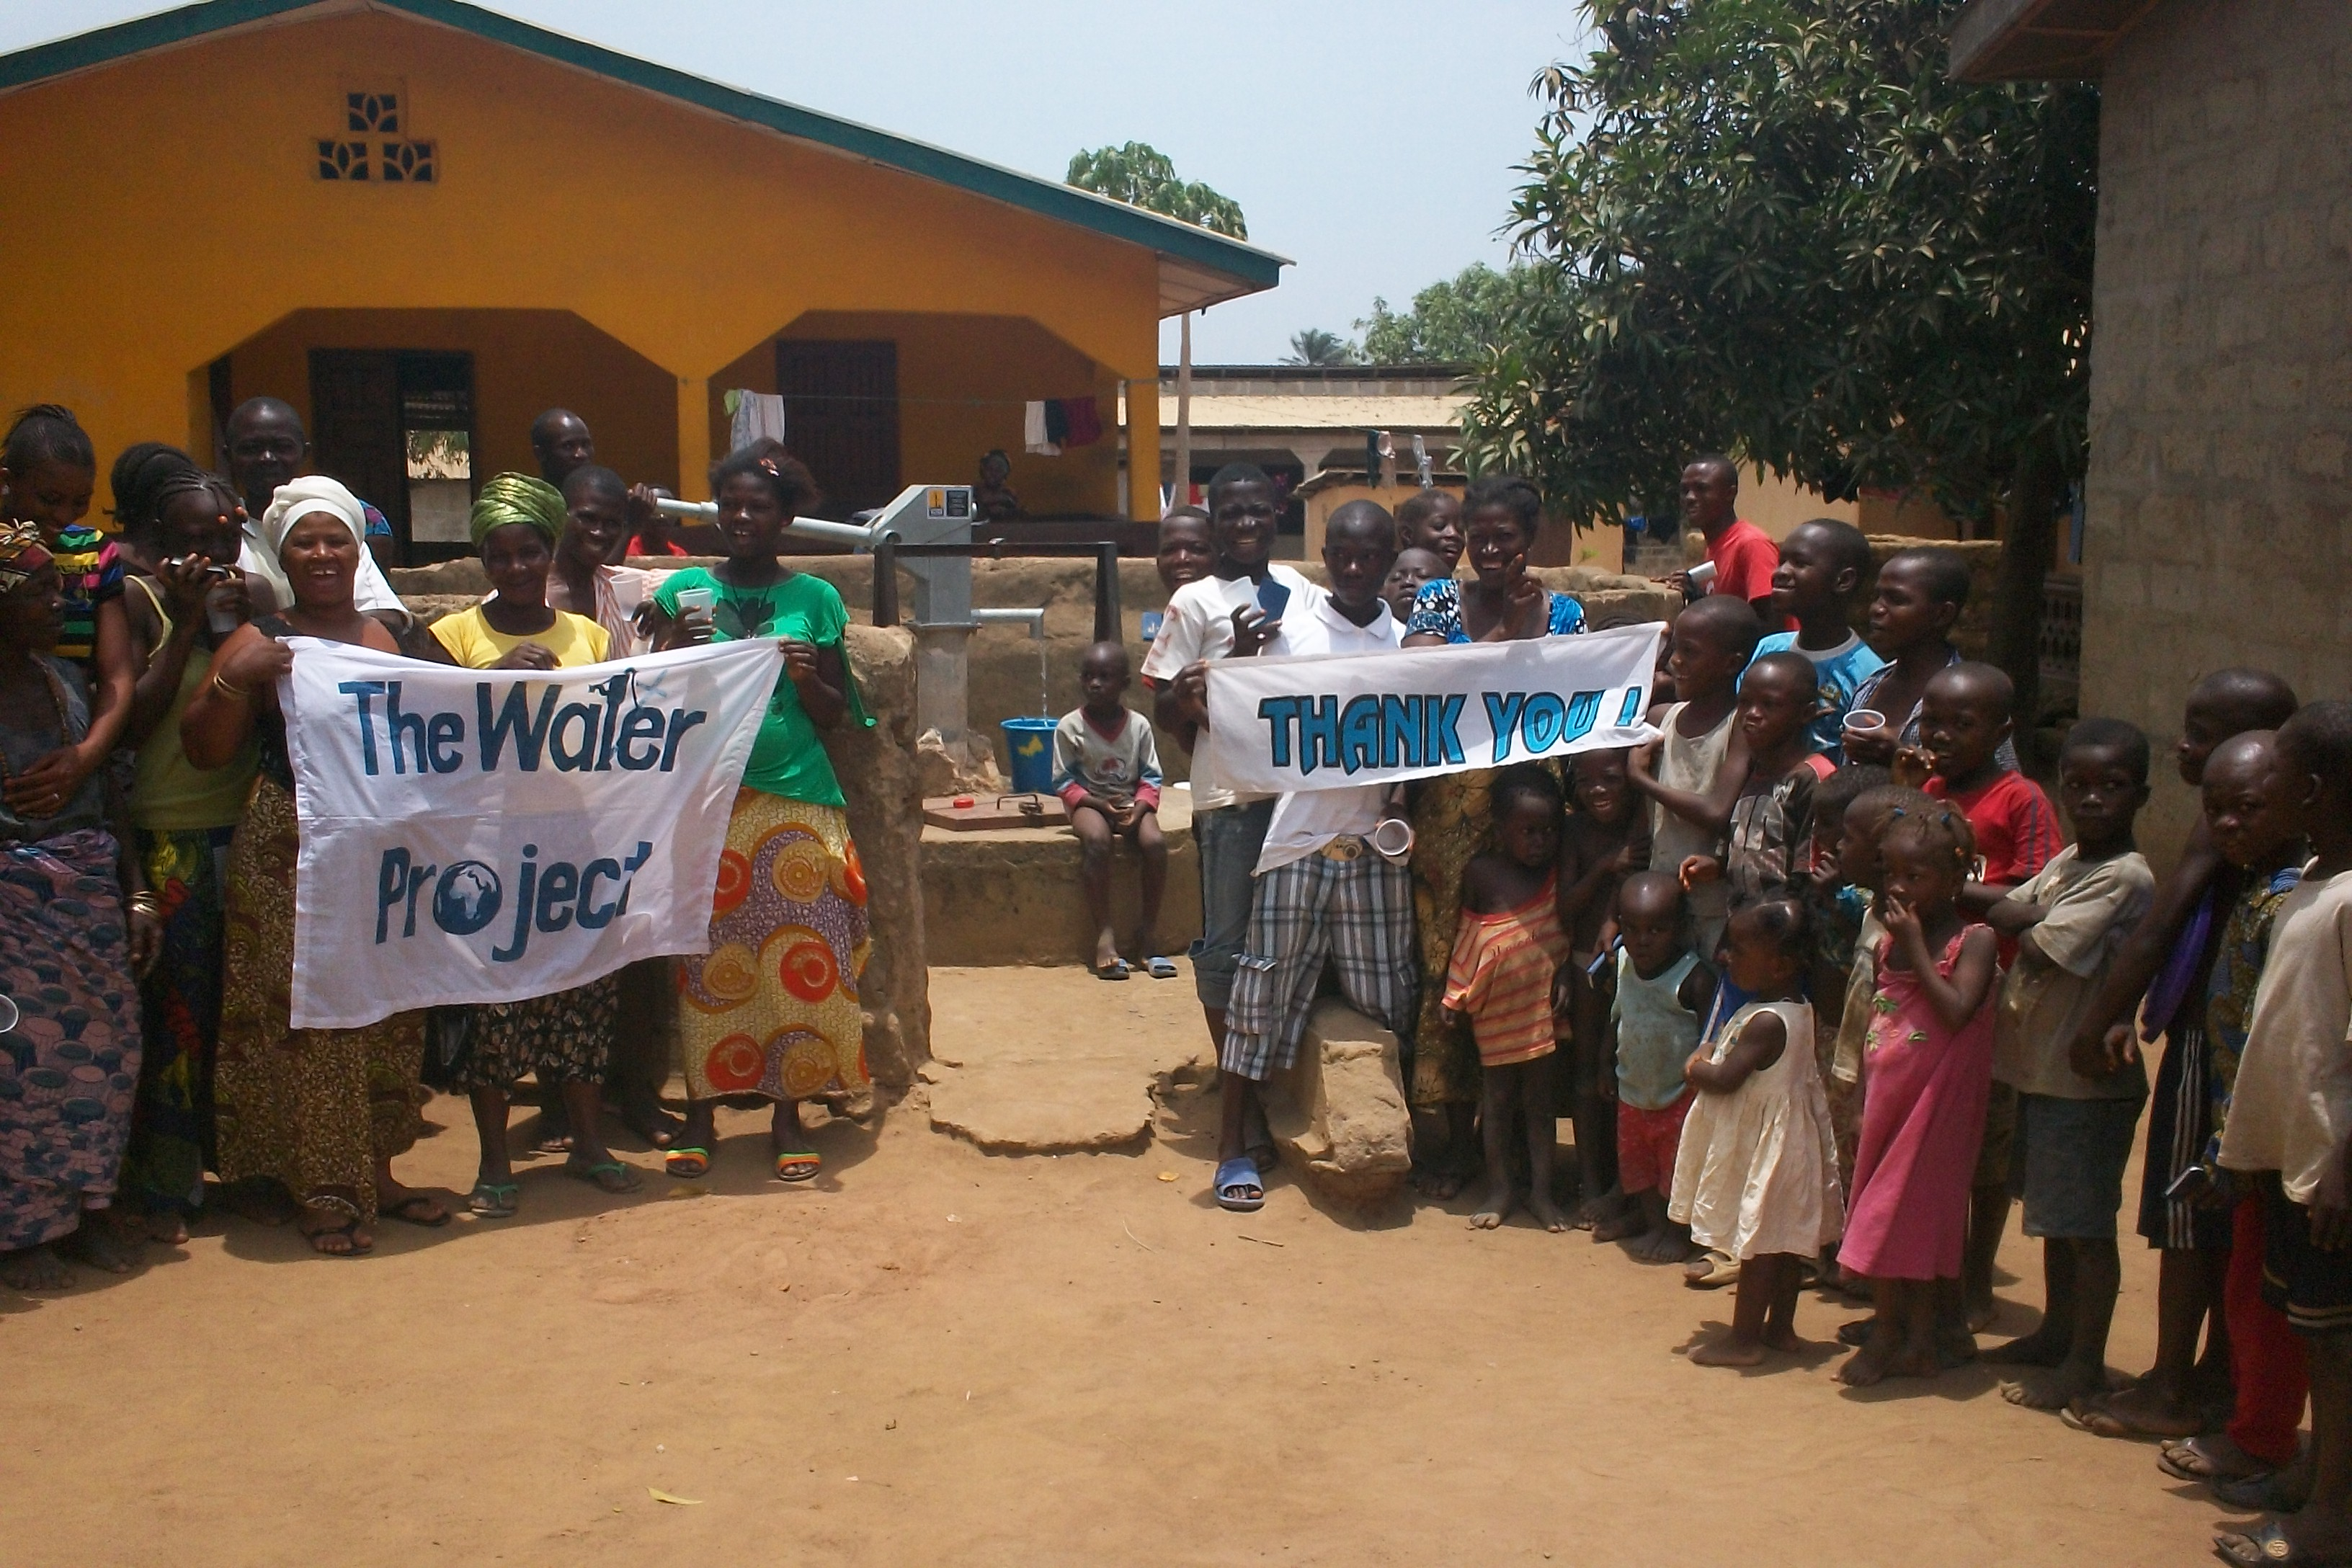 The Water Project : 7294653576_03d7aeb6f4_o-2